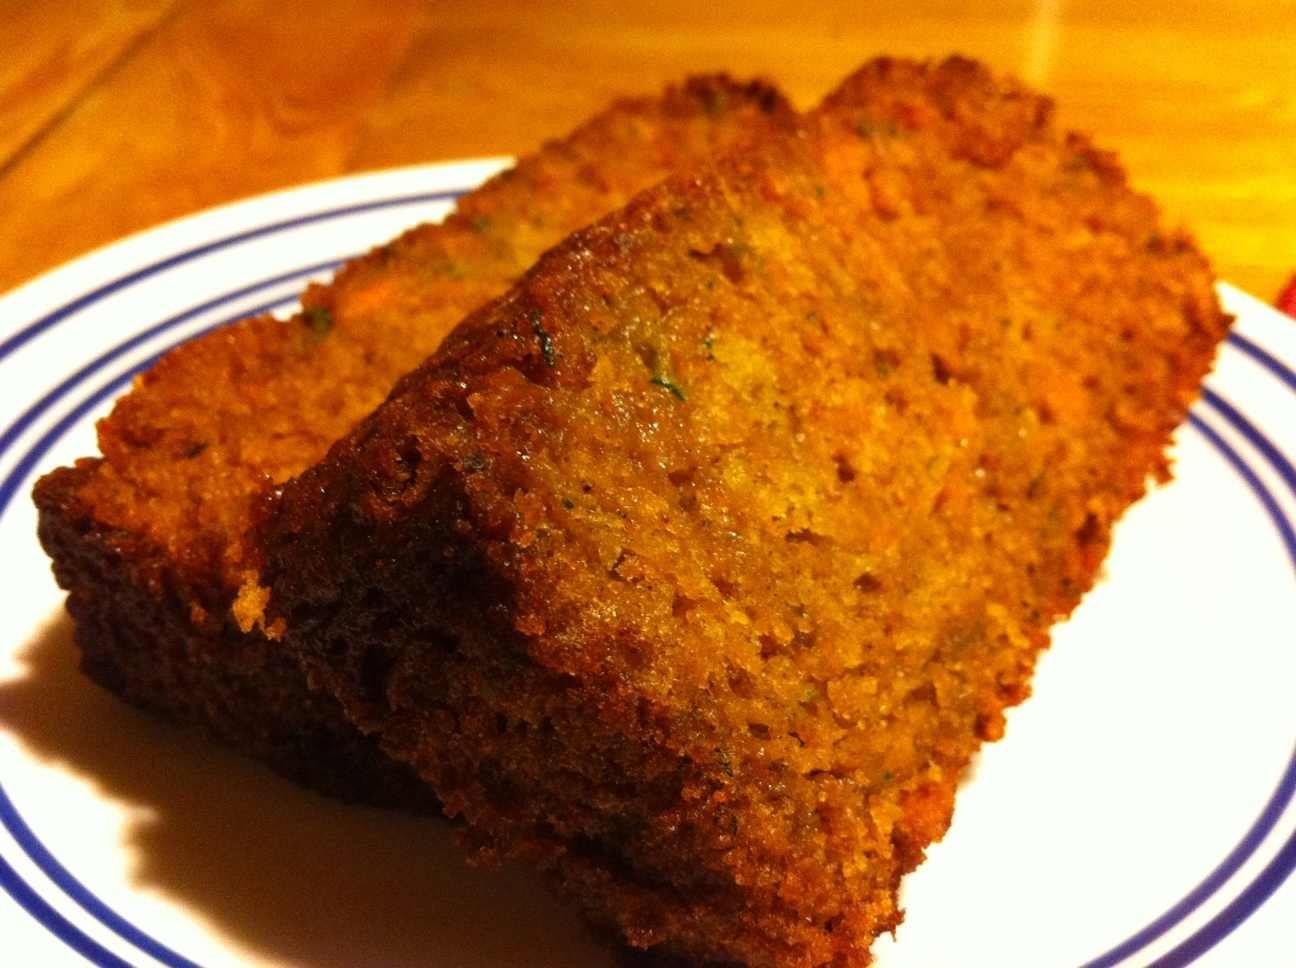 ... Recipes from Fill Your Plate Moms: Sweet Potato-Zucchini Bread